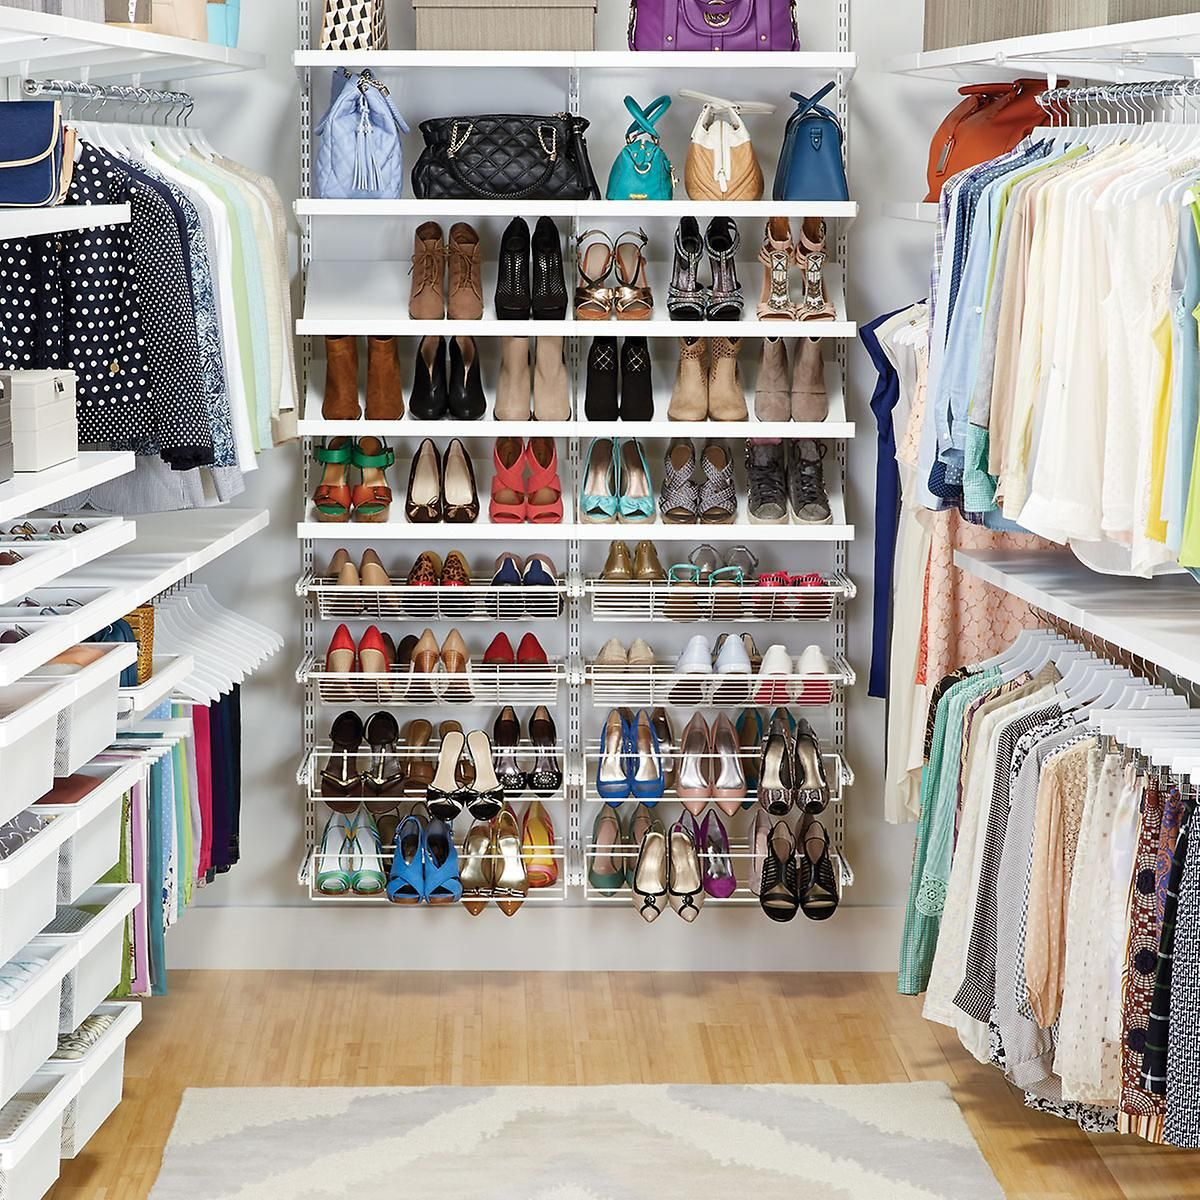 Container Store Closet System White Elfa Décor Walkin Clothes Closet  The Container Store  Home